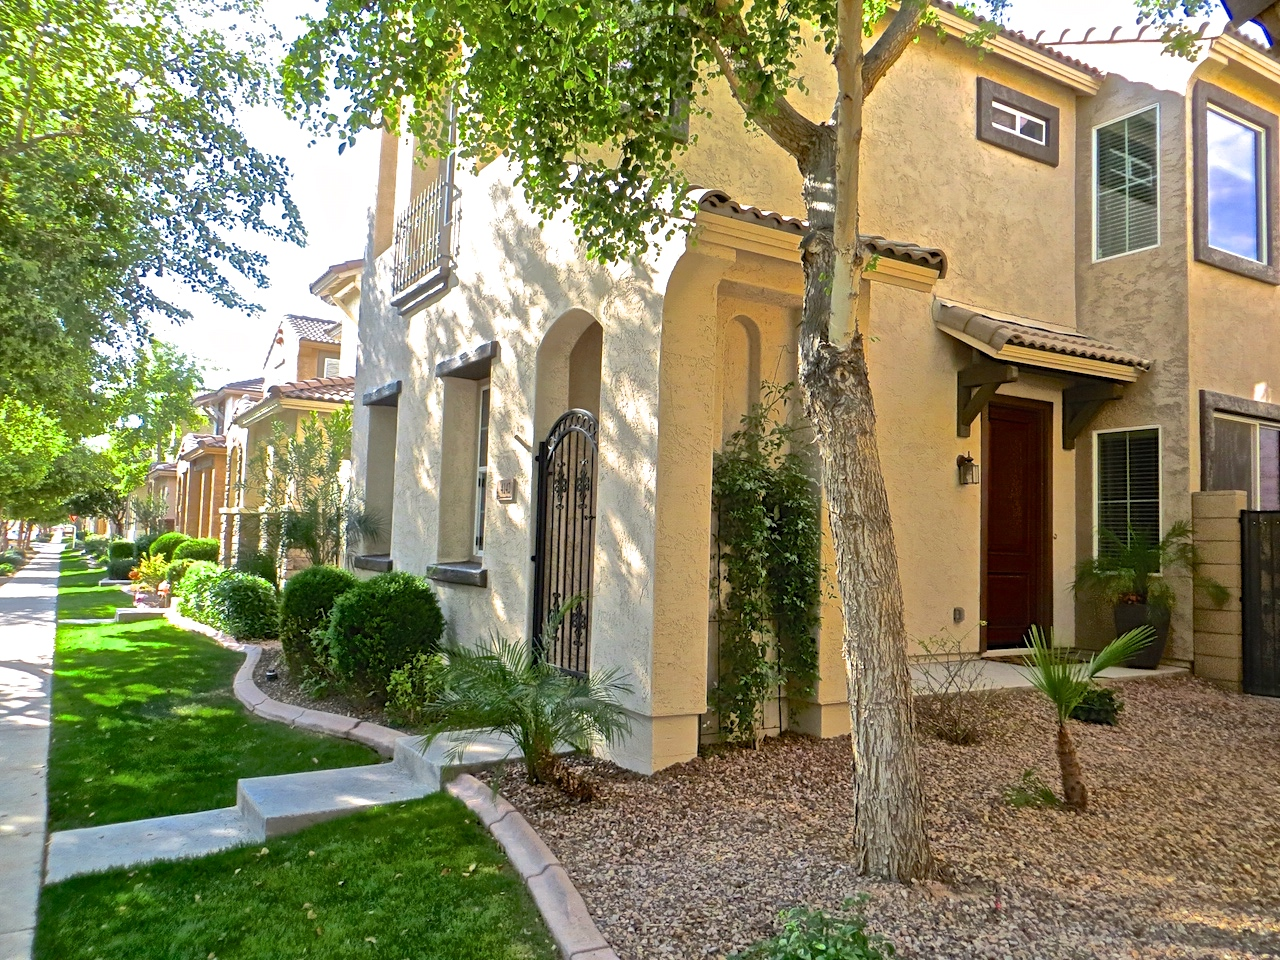 """1,682 sqft 3 bed 2.5 bath home for sale in """"the willows"""" gilbert"""